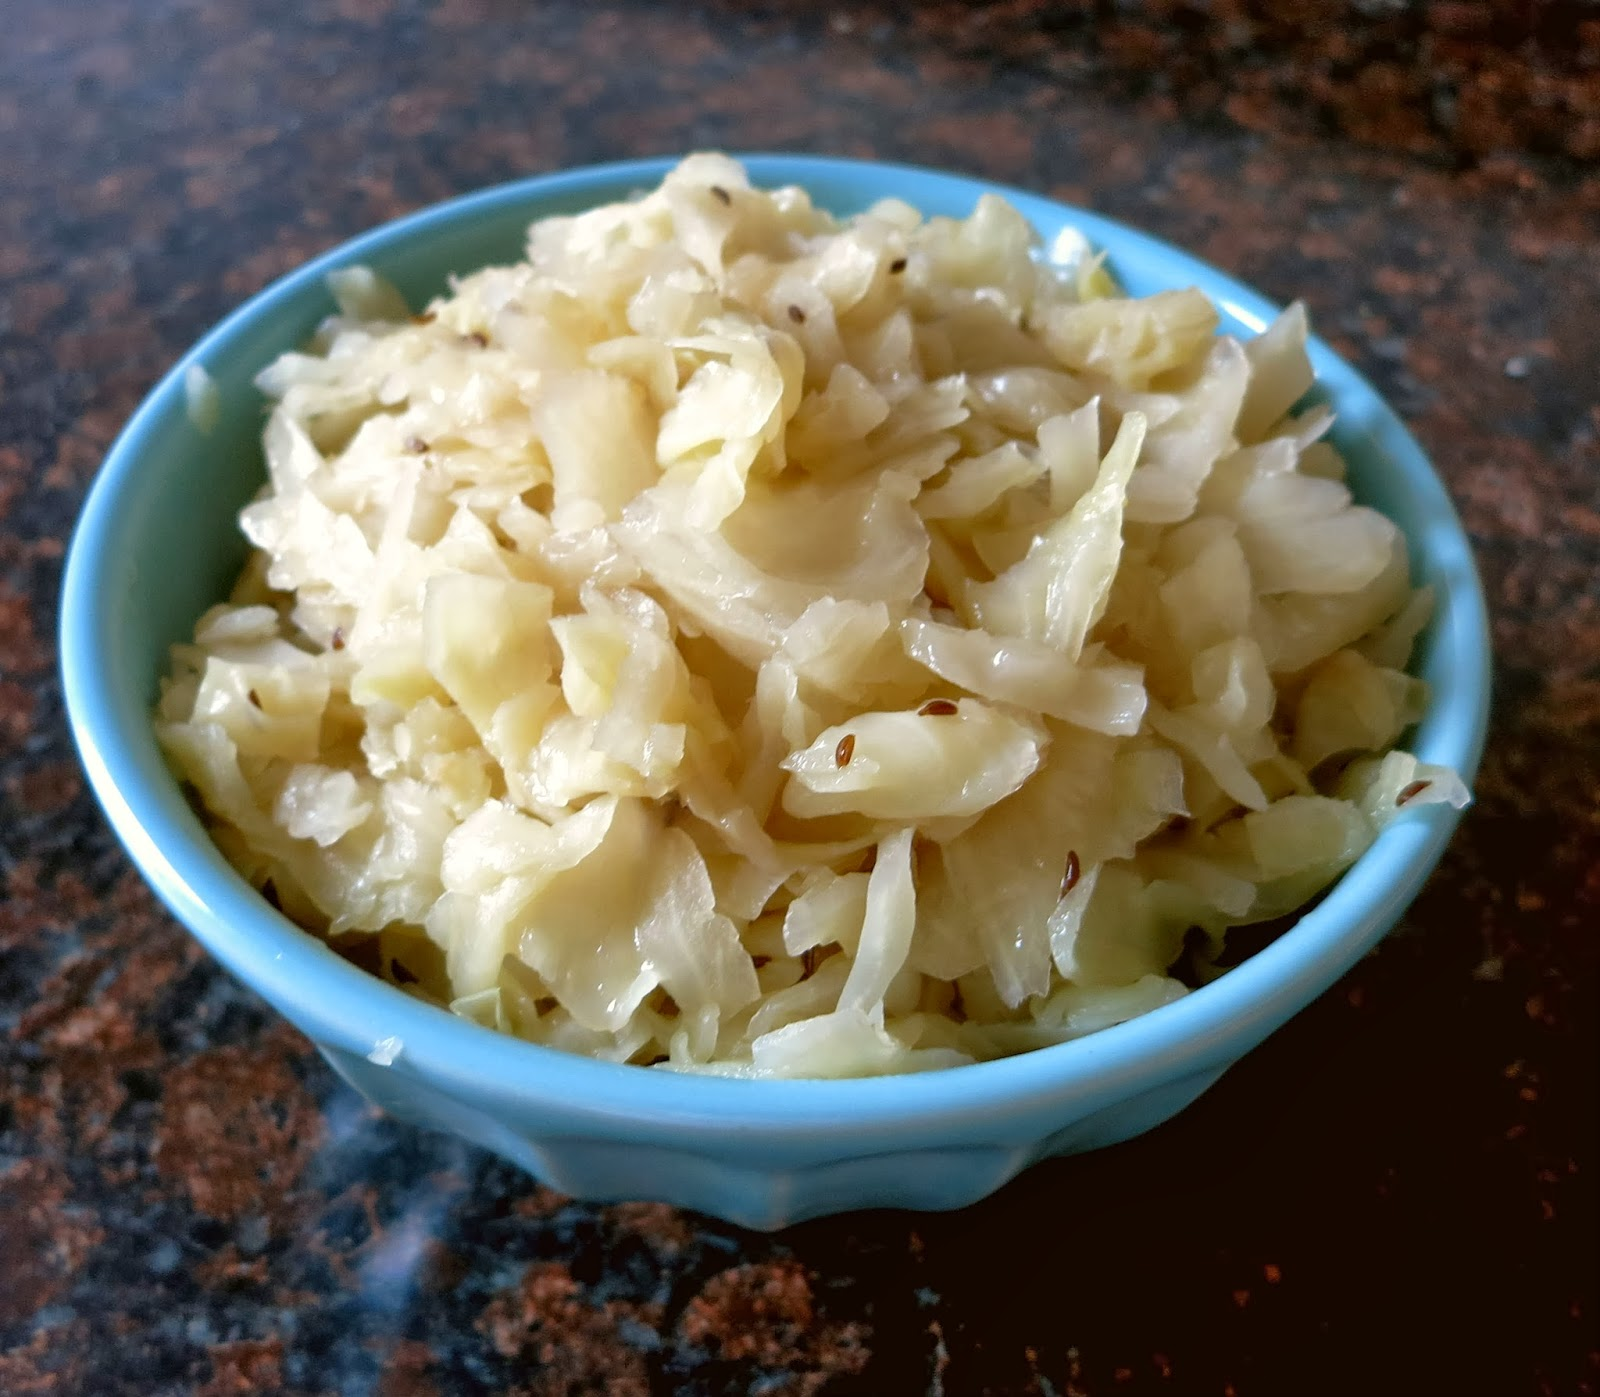 Grandma's Cabbage